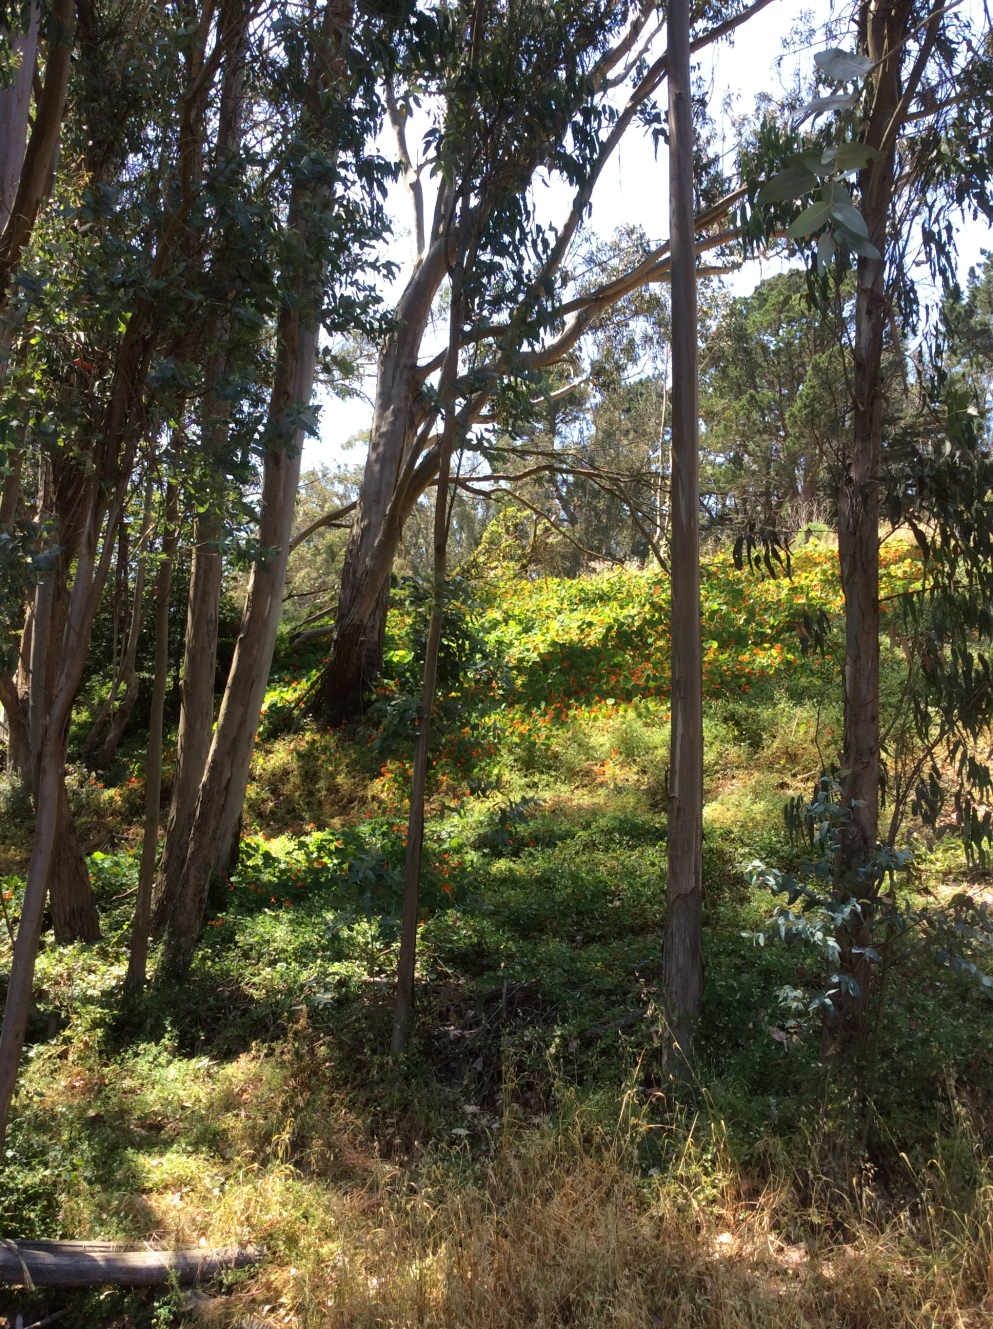 Eucalyptus, flowers, and greenery on a hillside